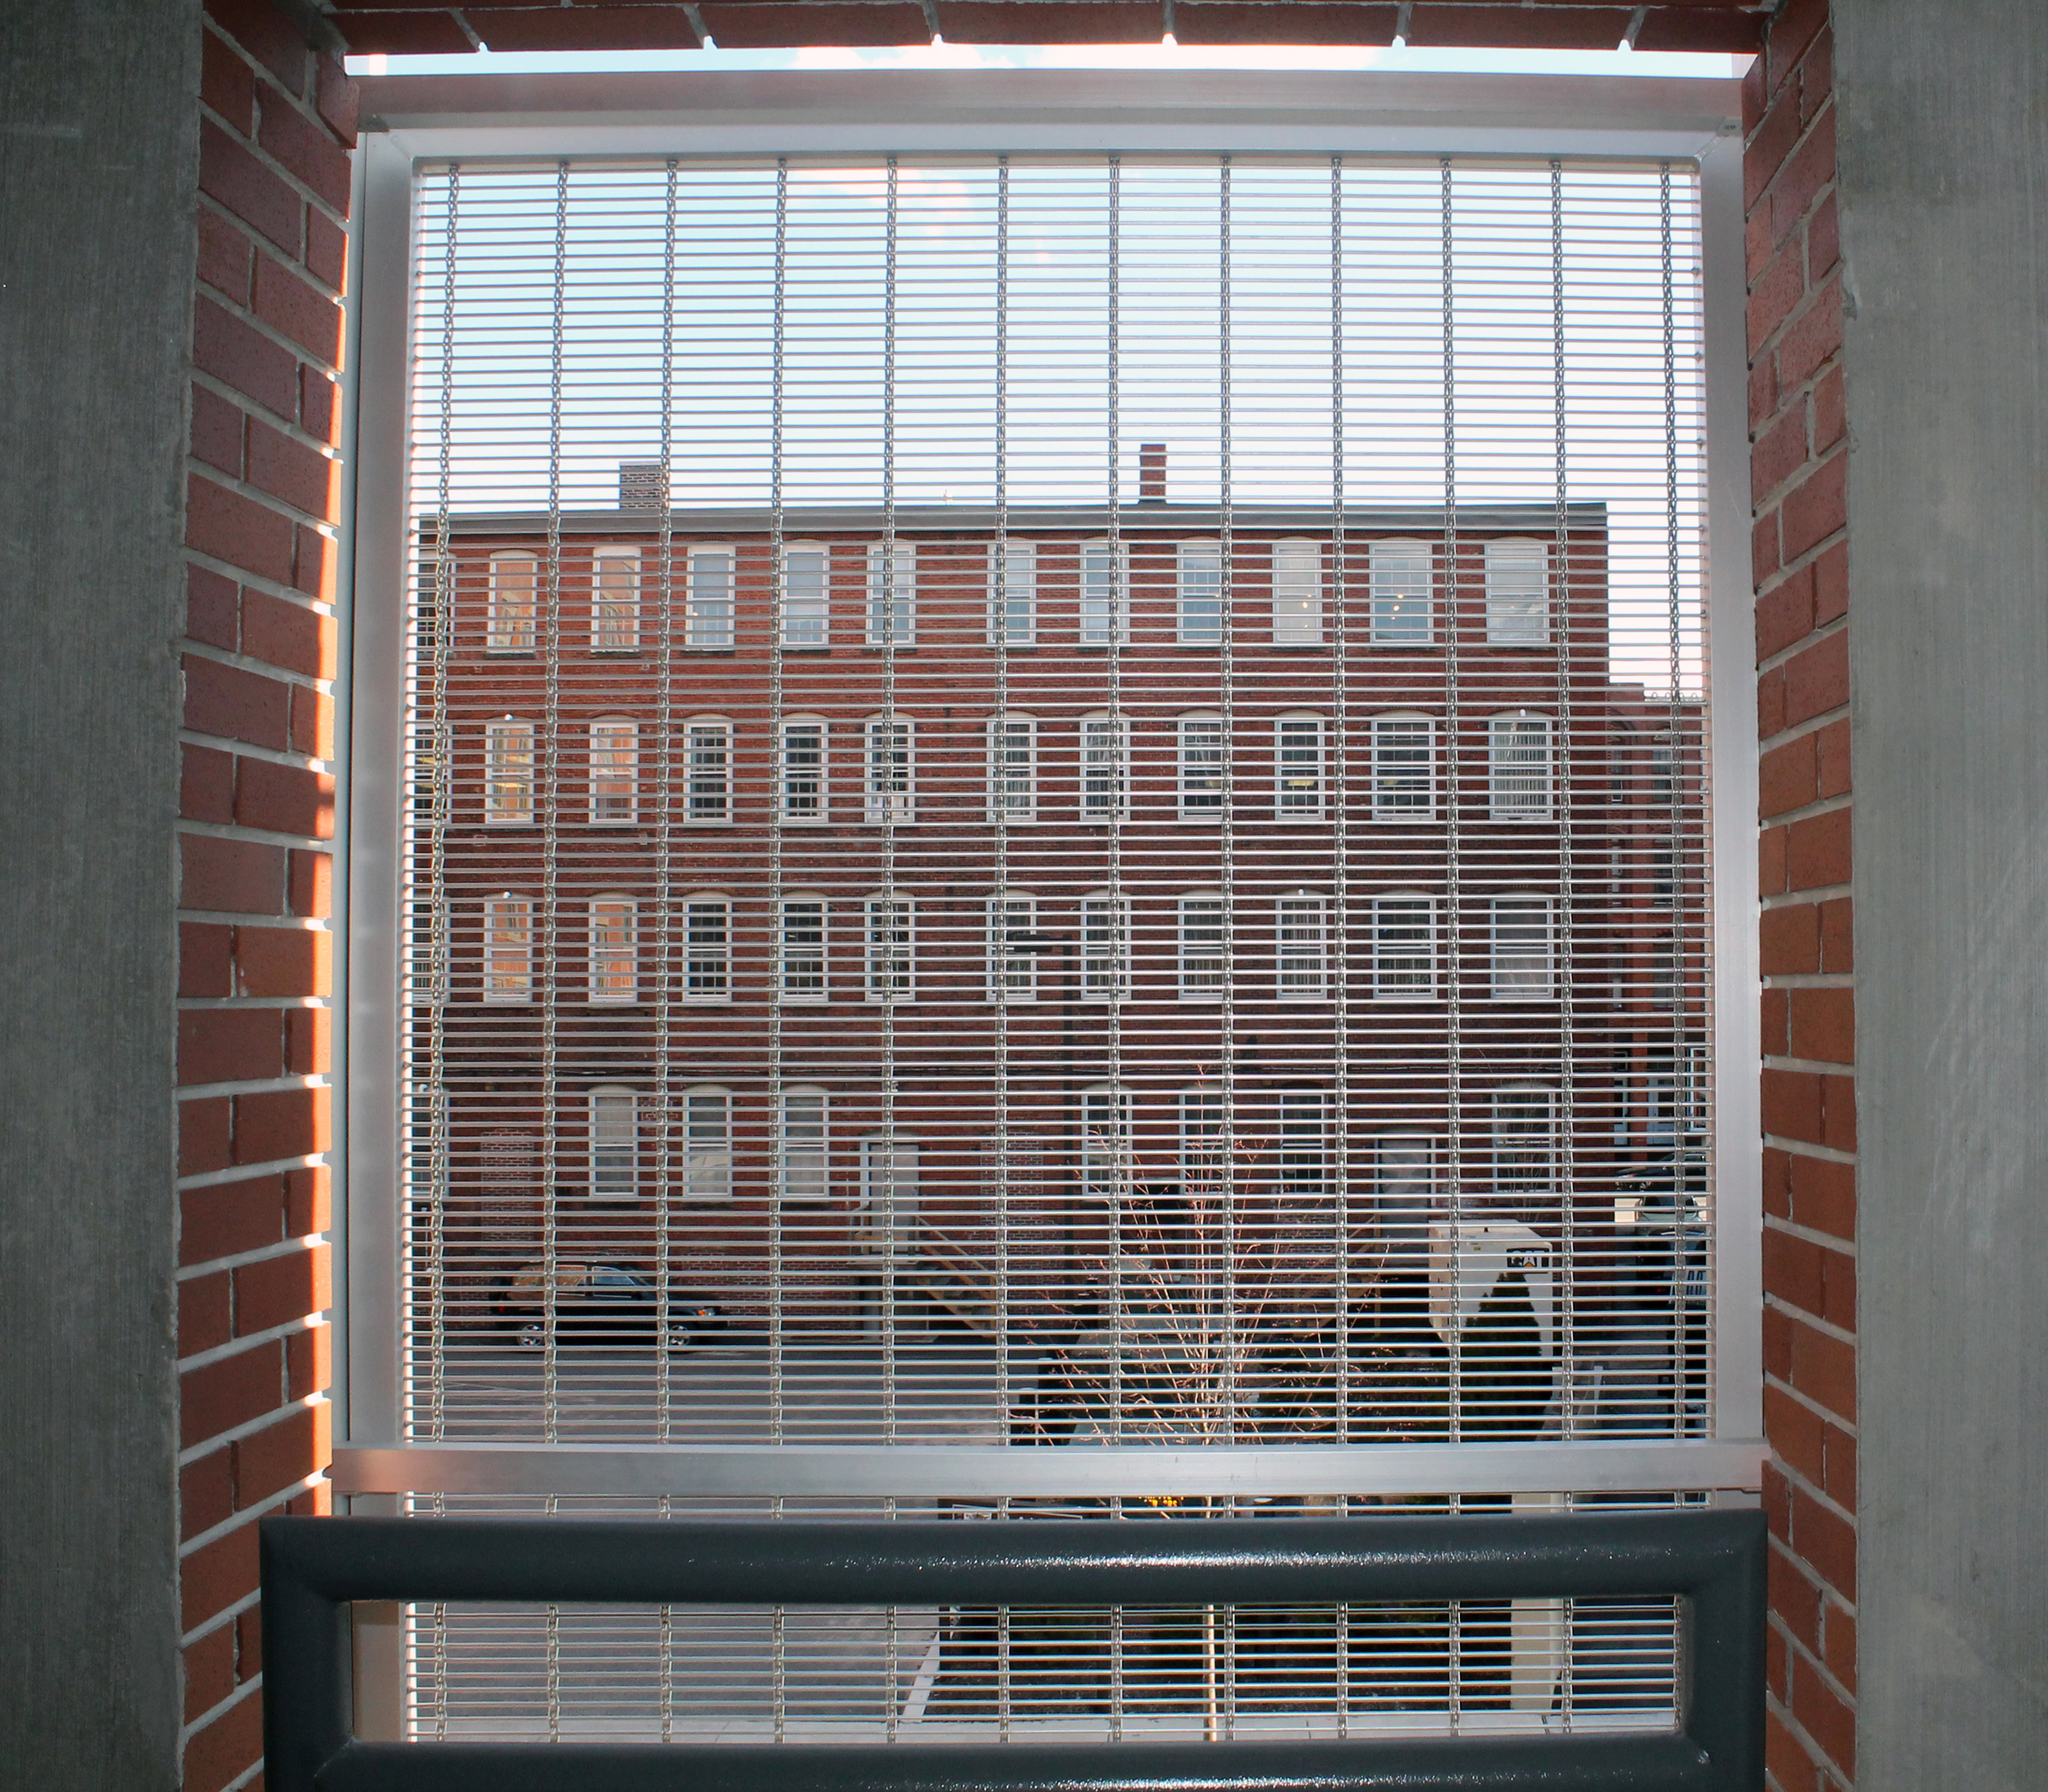 M13Z-145 offers the sight lines characteristic of glass, with the benefit of durability.